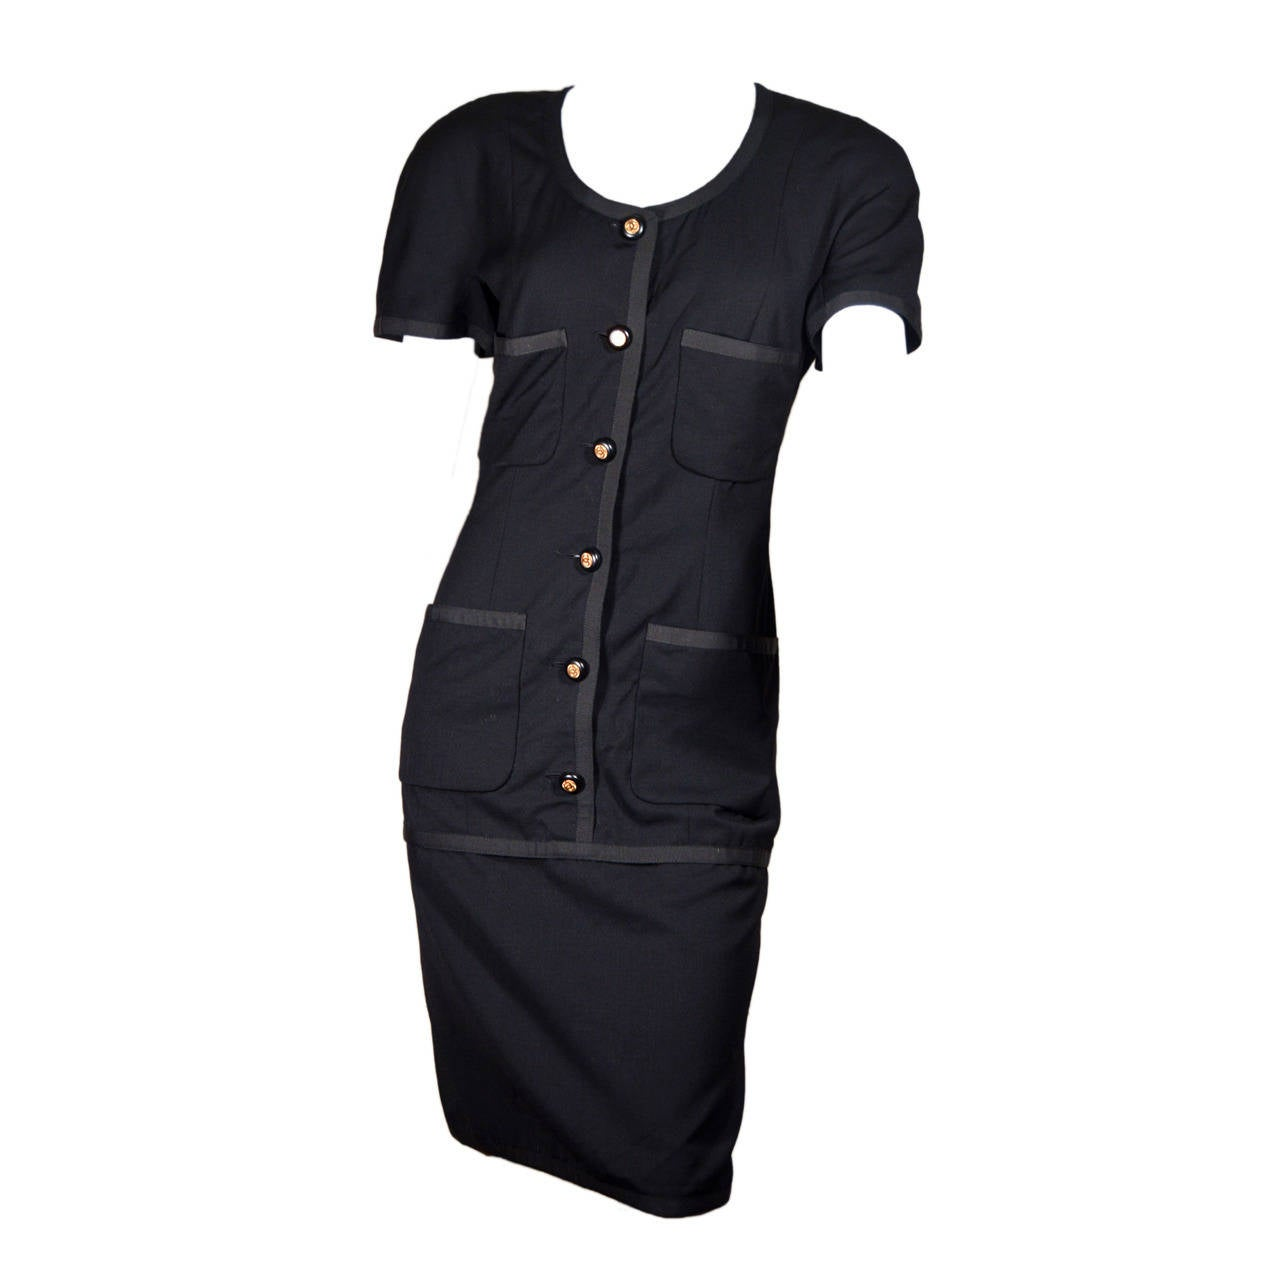 Chanel Vintage Black Wool Dress with Logo Buttons